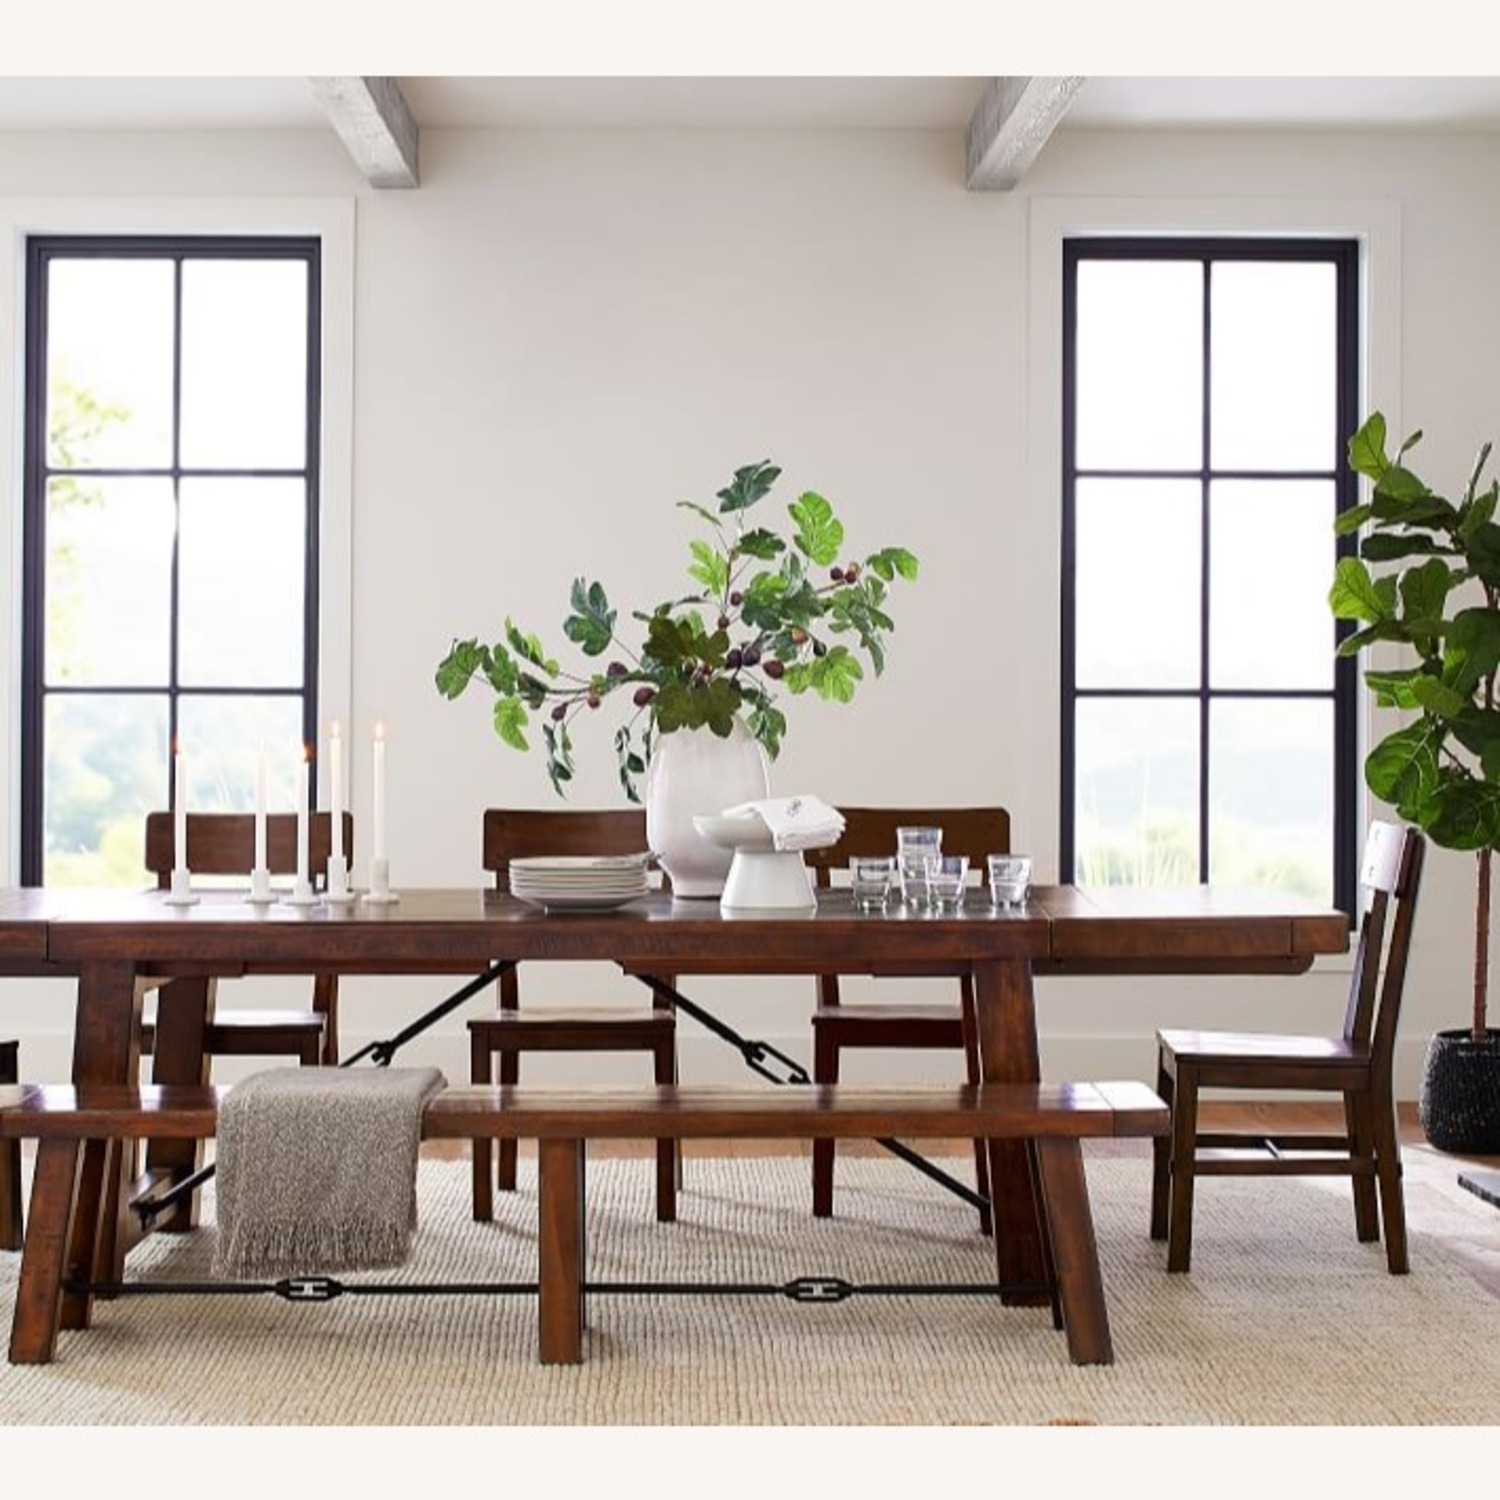 Pottery Barn Distressed Wood Rustic Table and Benches - image-1